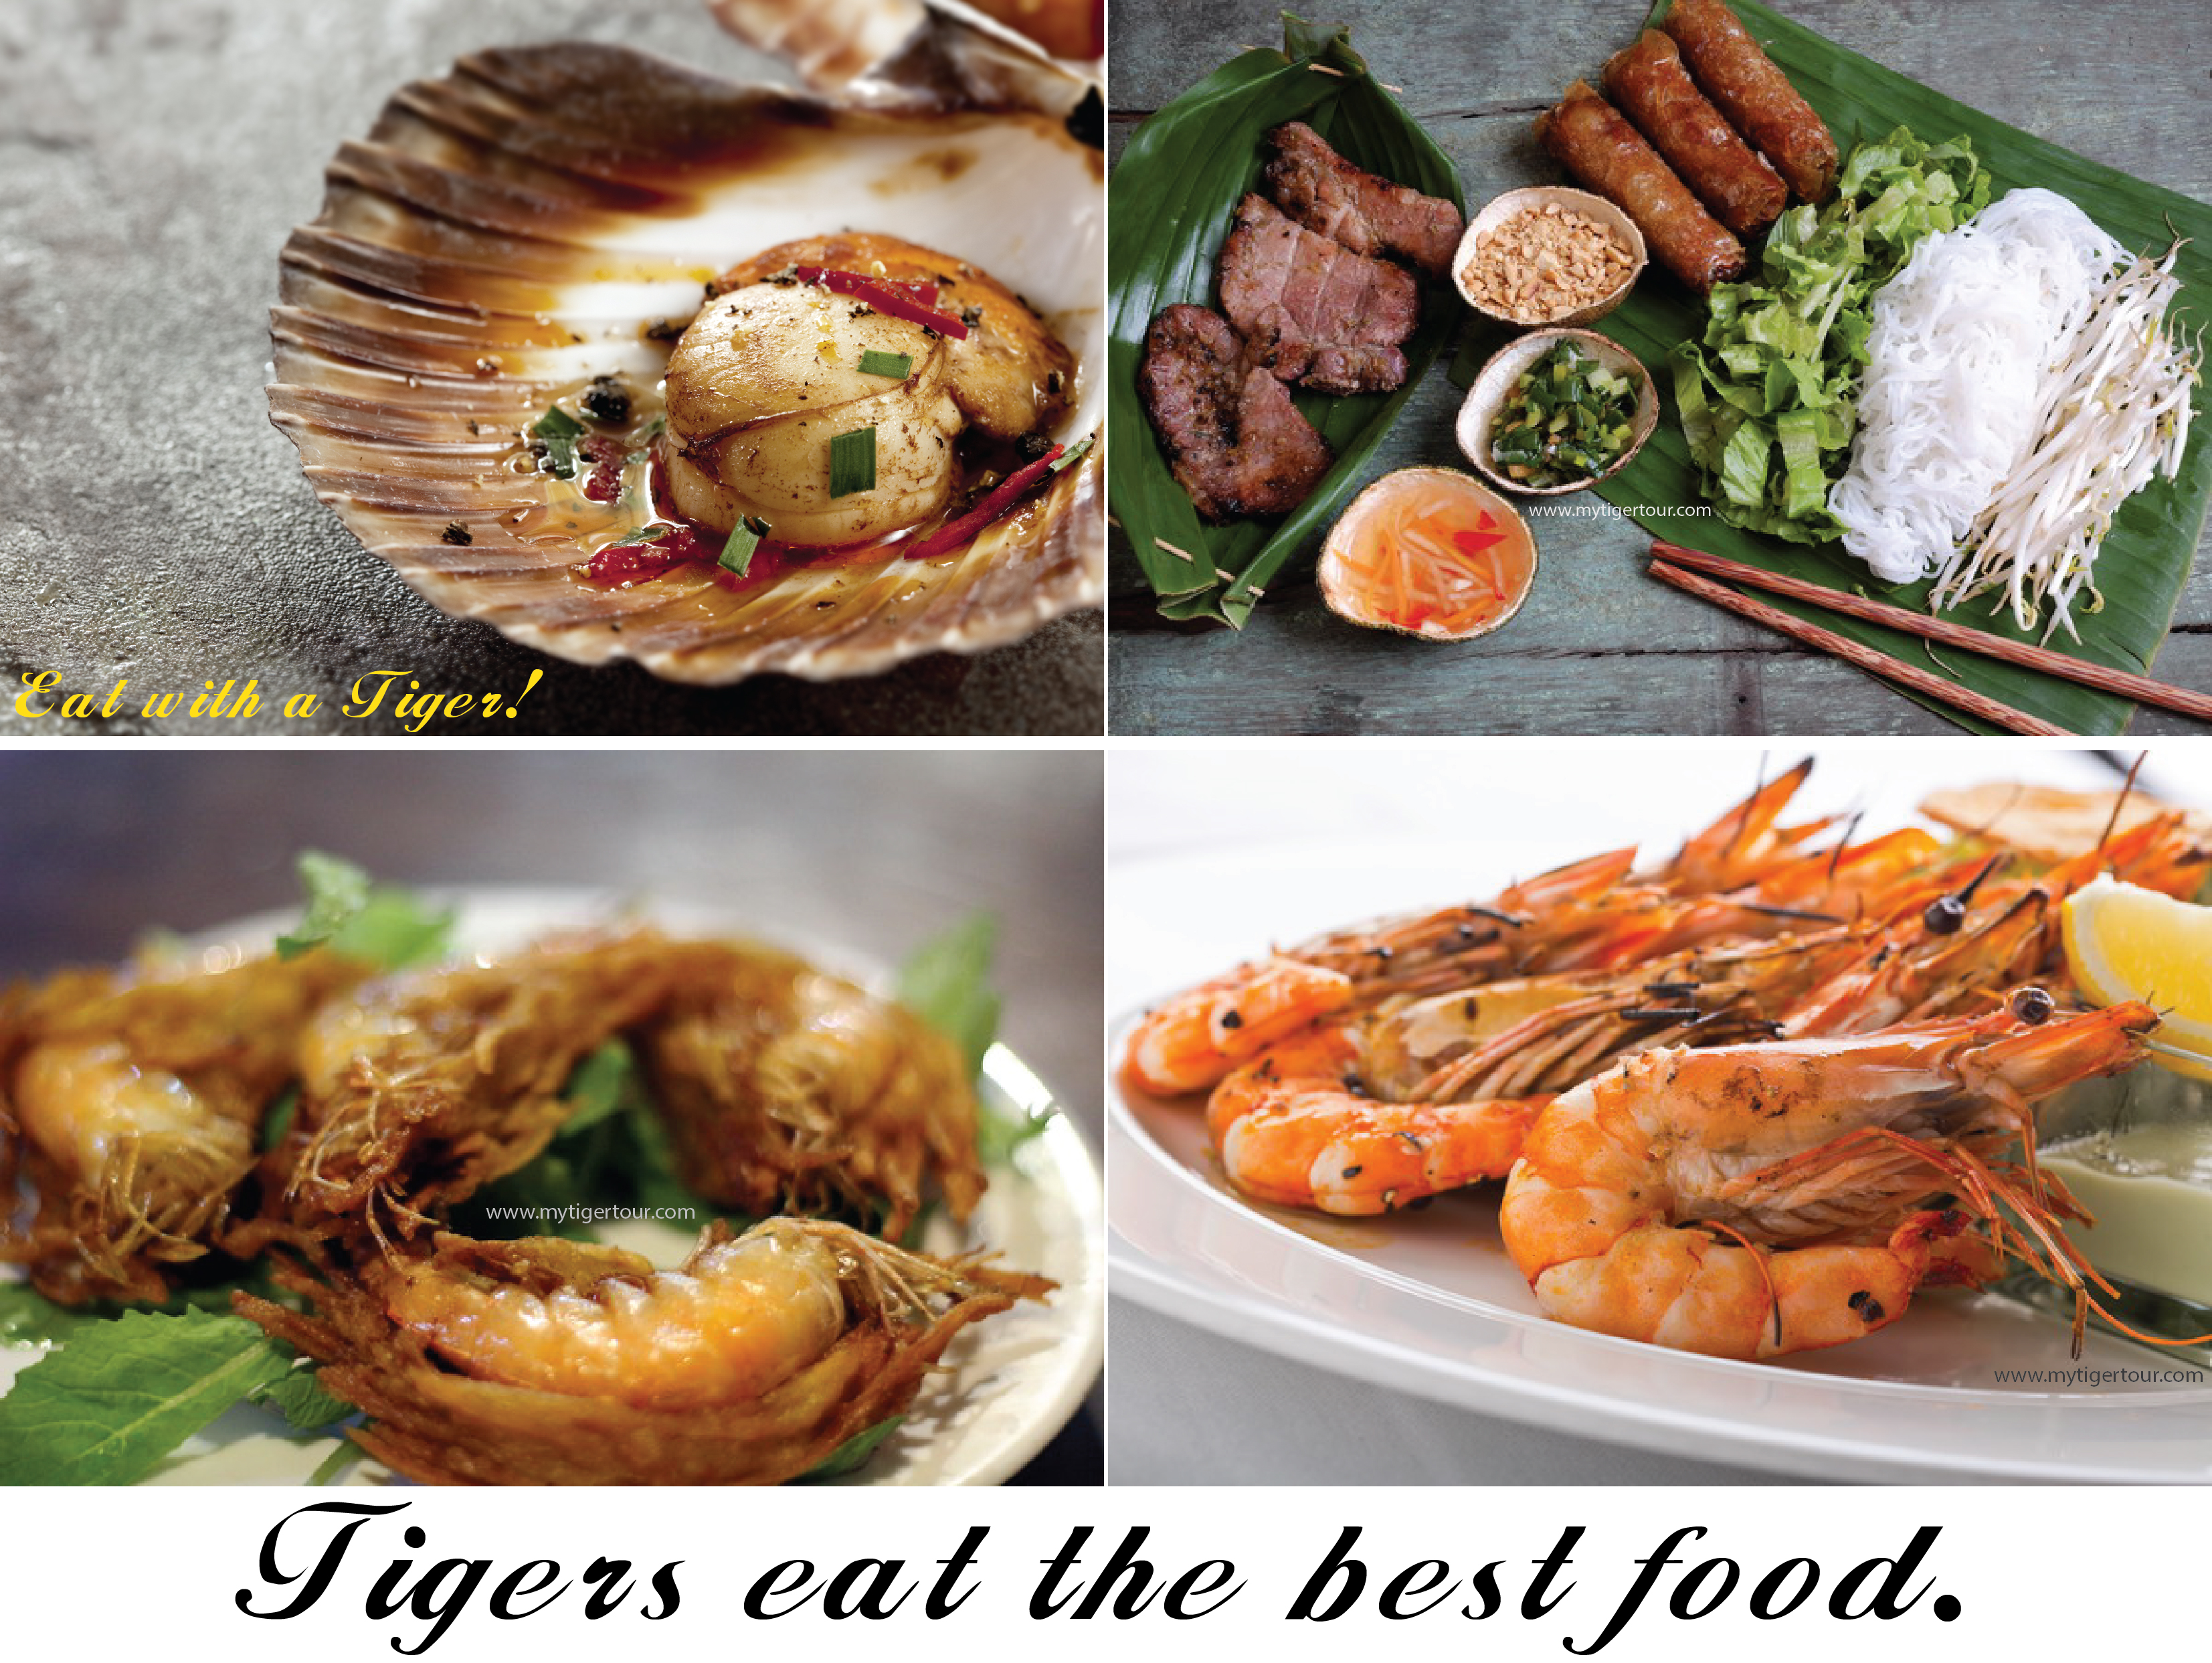 Tigers eat the best food. Eat with a Tiger!